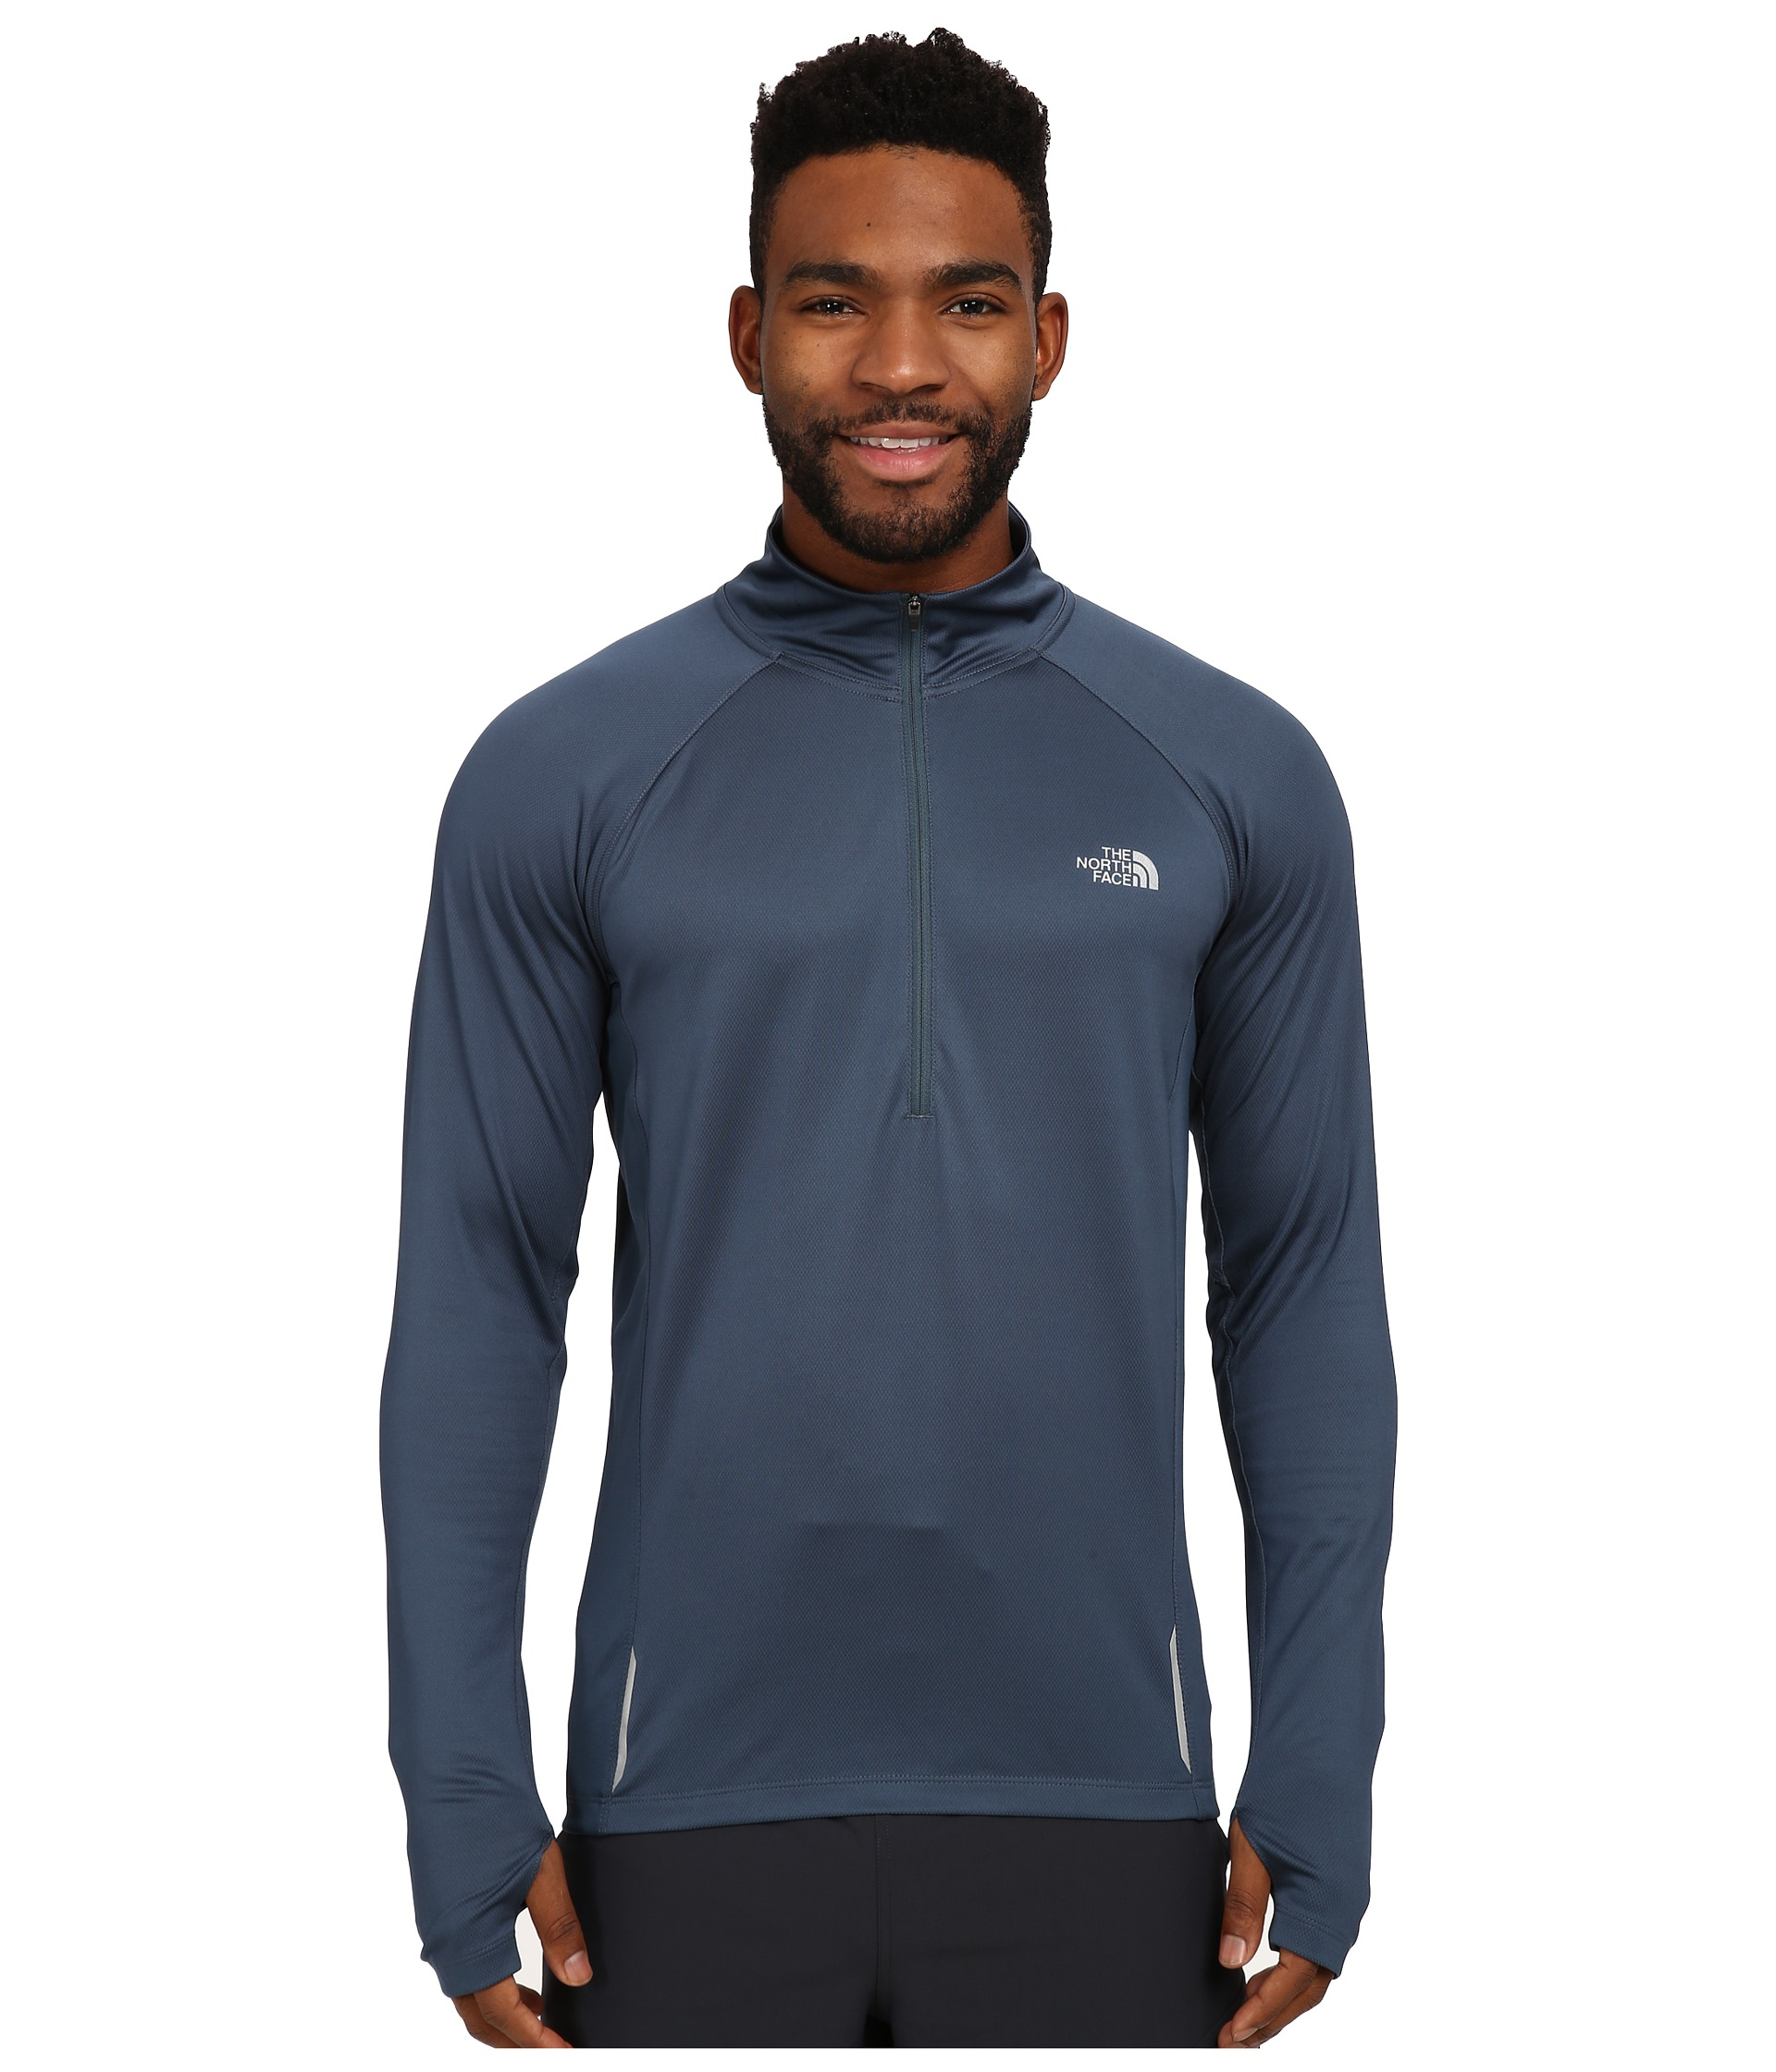 lyst the north face isolite 1 2 zip pullover in blue for men. Black Bedroom Furniture Sets. Home Design Ideas